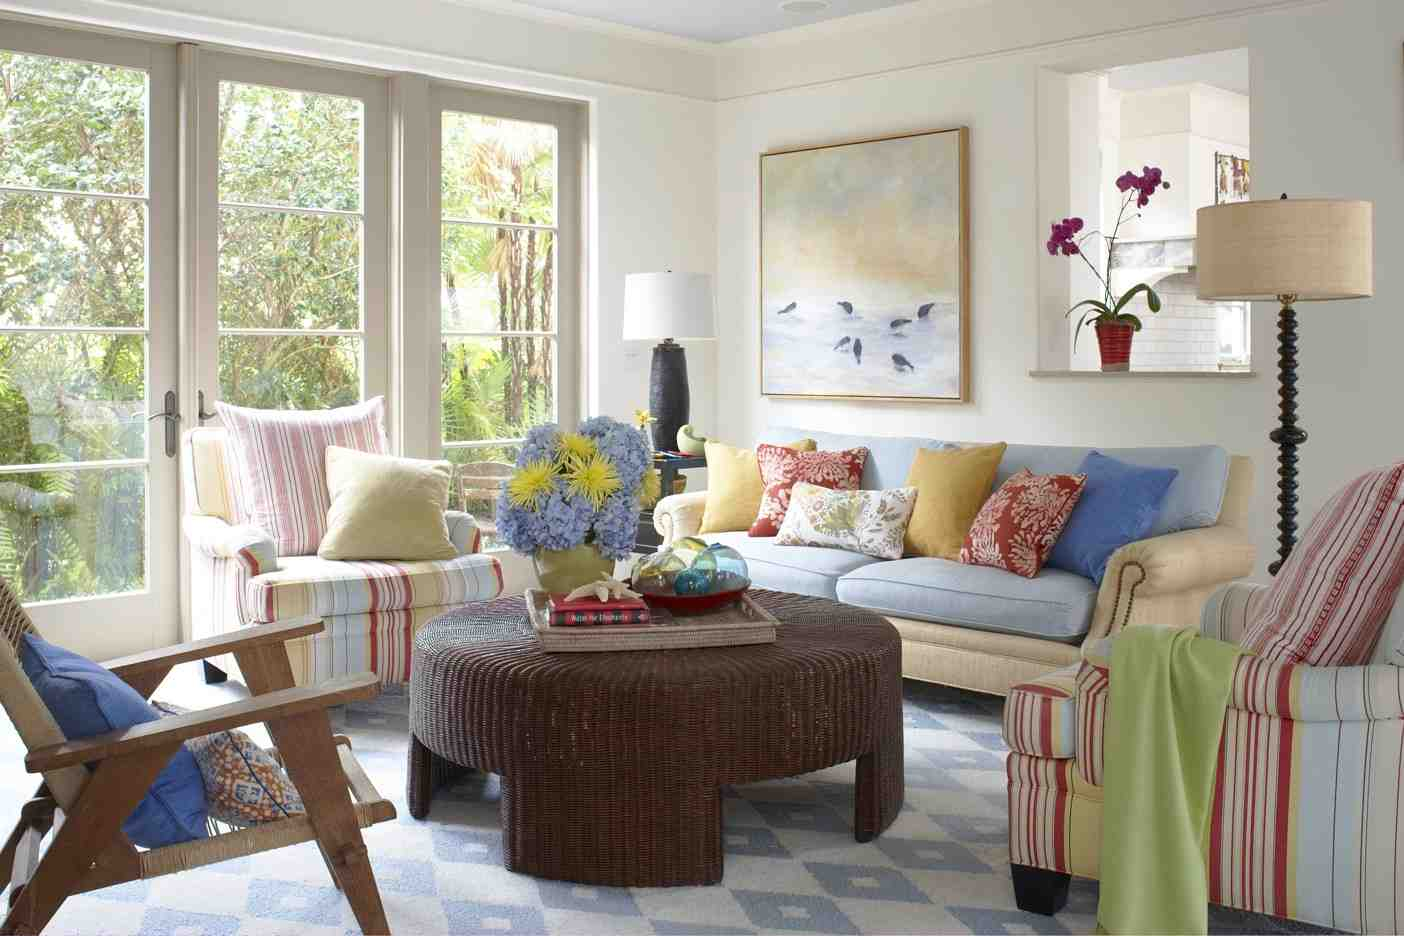 Better Homes and Gardens  design idea for living room with colorful sofa  plus multiple color. Better Homes and Gardens Design A Room   HomesFeed